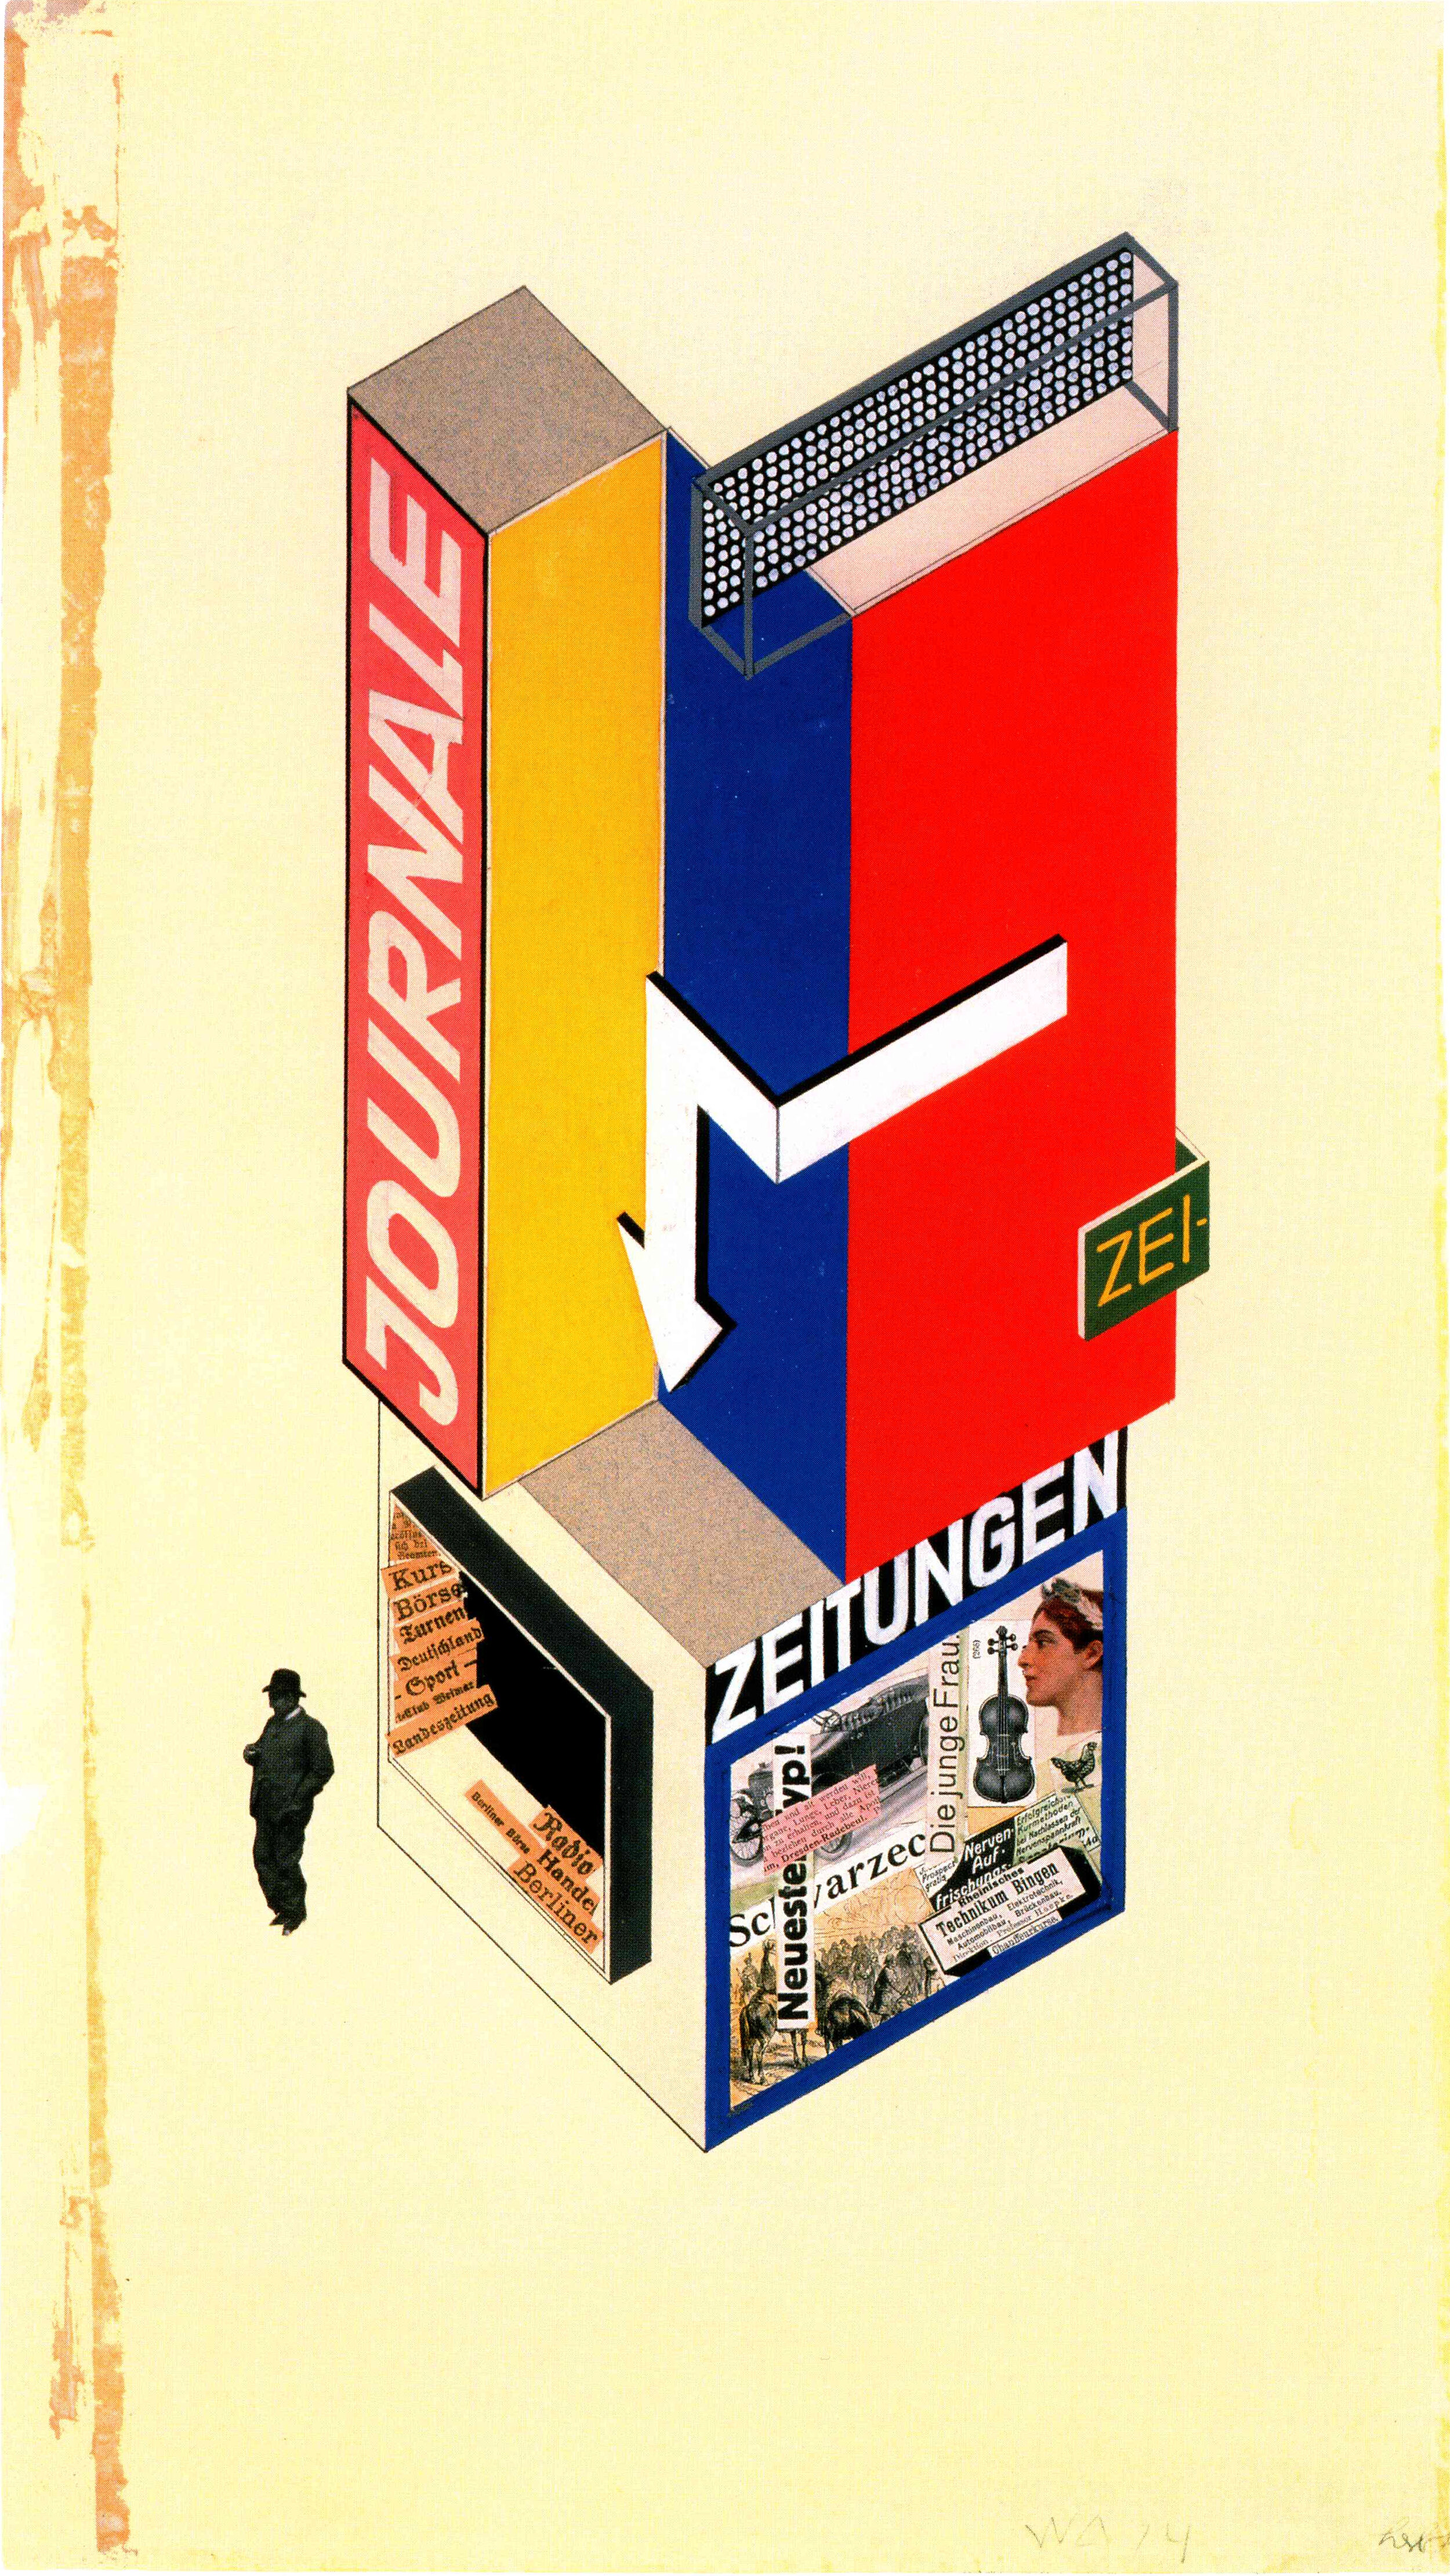 referenceherbert-bayer-design-for-a-newspaper-stand-1924-tempera-and-cut-and-pasted-print-elements-on-paper-64-5-x-34-5cm.jpg